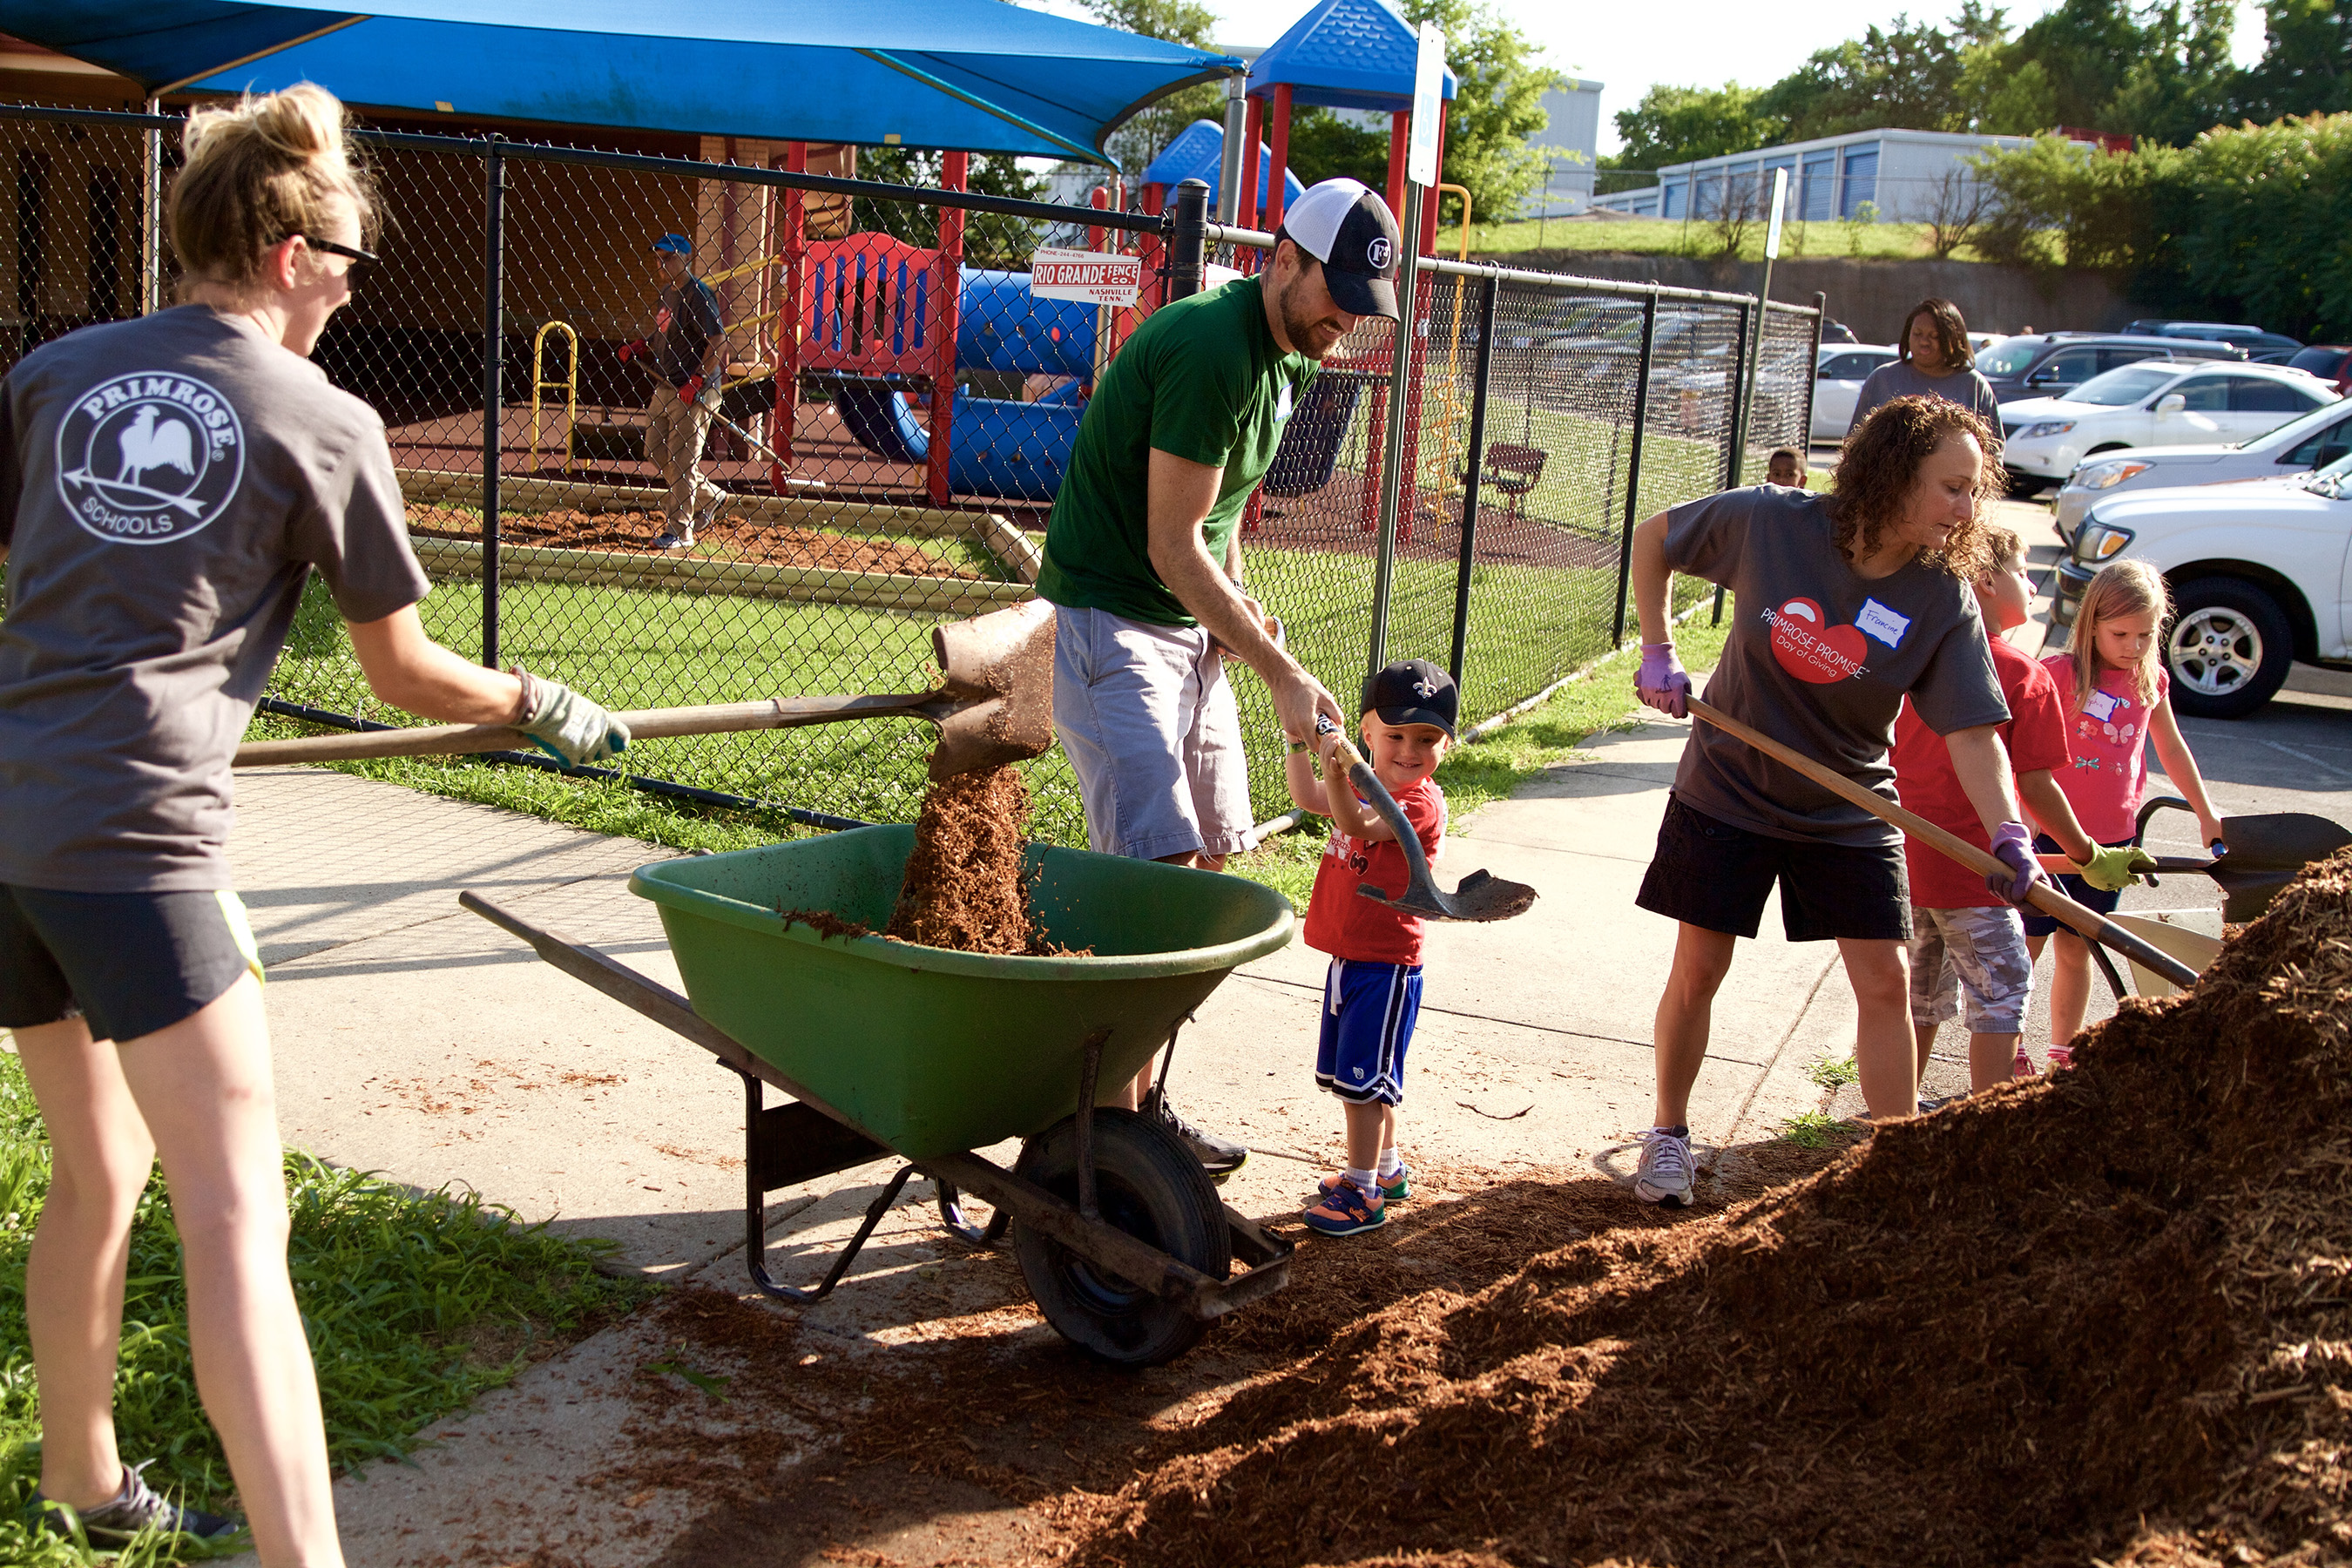 Teachers, staff, children and families from Primrose School of Brentwood (Brentwood, Tenn.) practice environmental responsibility by participating in community beautification efforts.